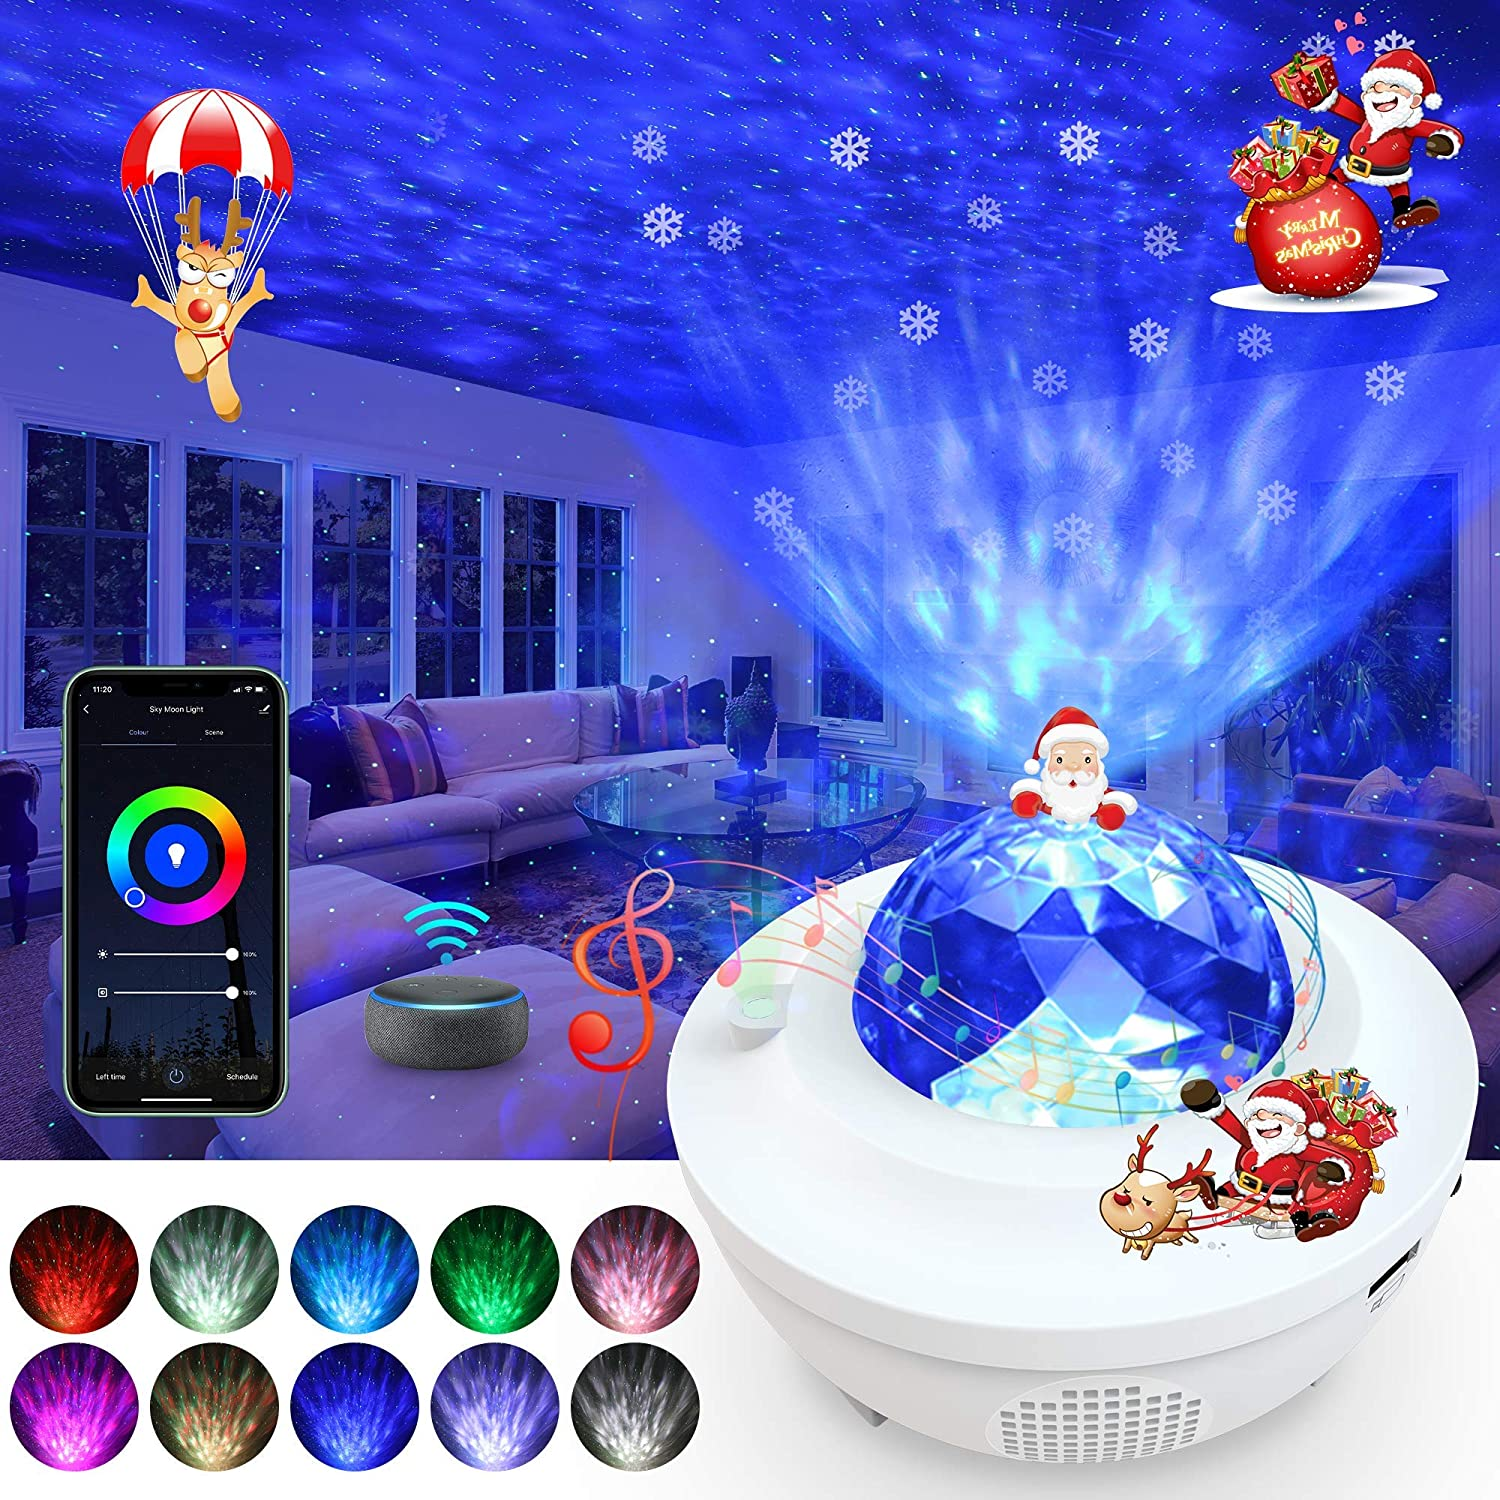 LBell Galaxy Projector 3 in 1 Smart Star Projector Sky Lite with Alexa,Google Assistant for Baby Kids Bedroom//Game Rooms//Home Theatre//Night Light Ambiance with Bluetooth Music Speaker(White)